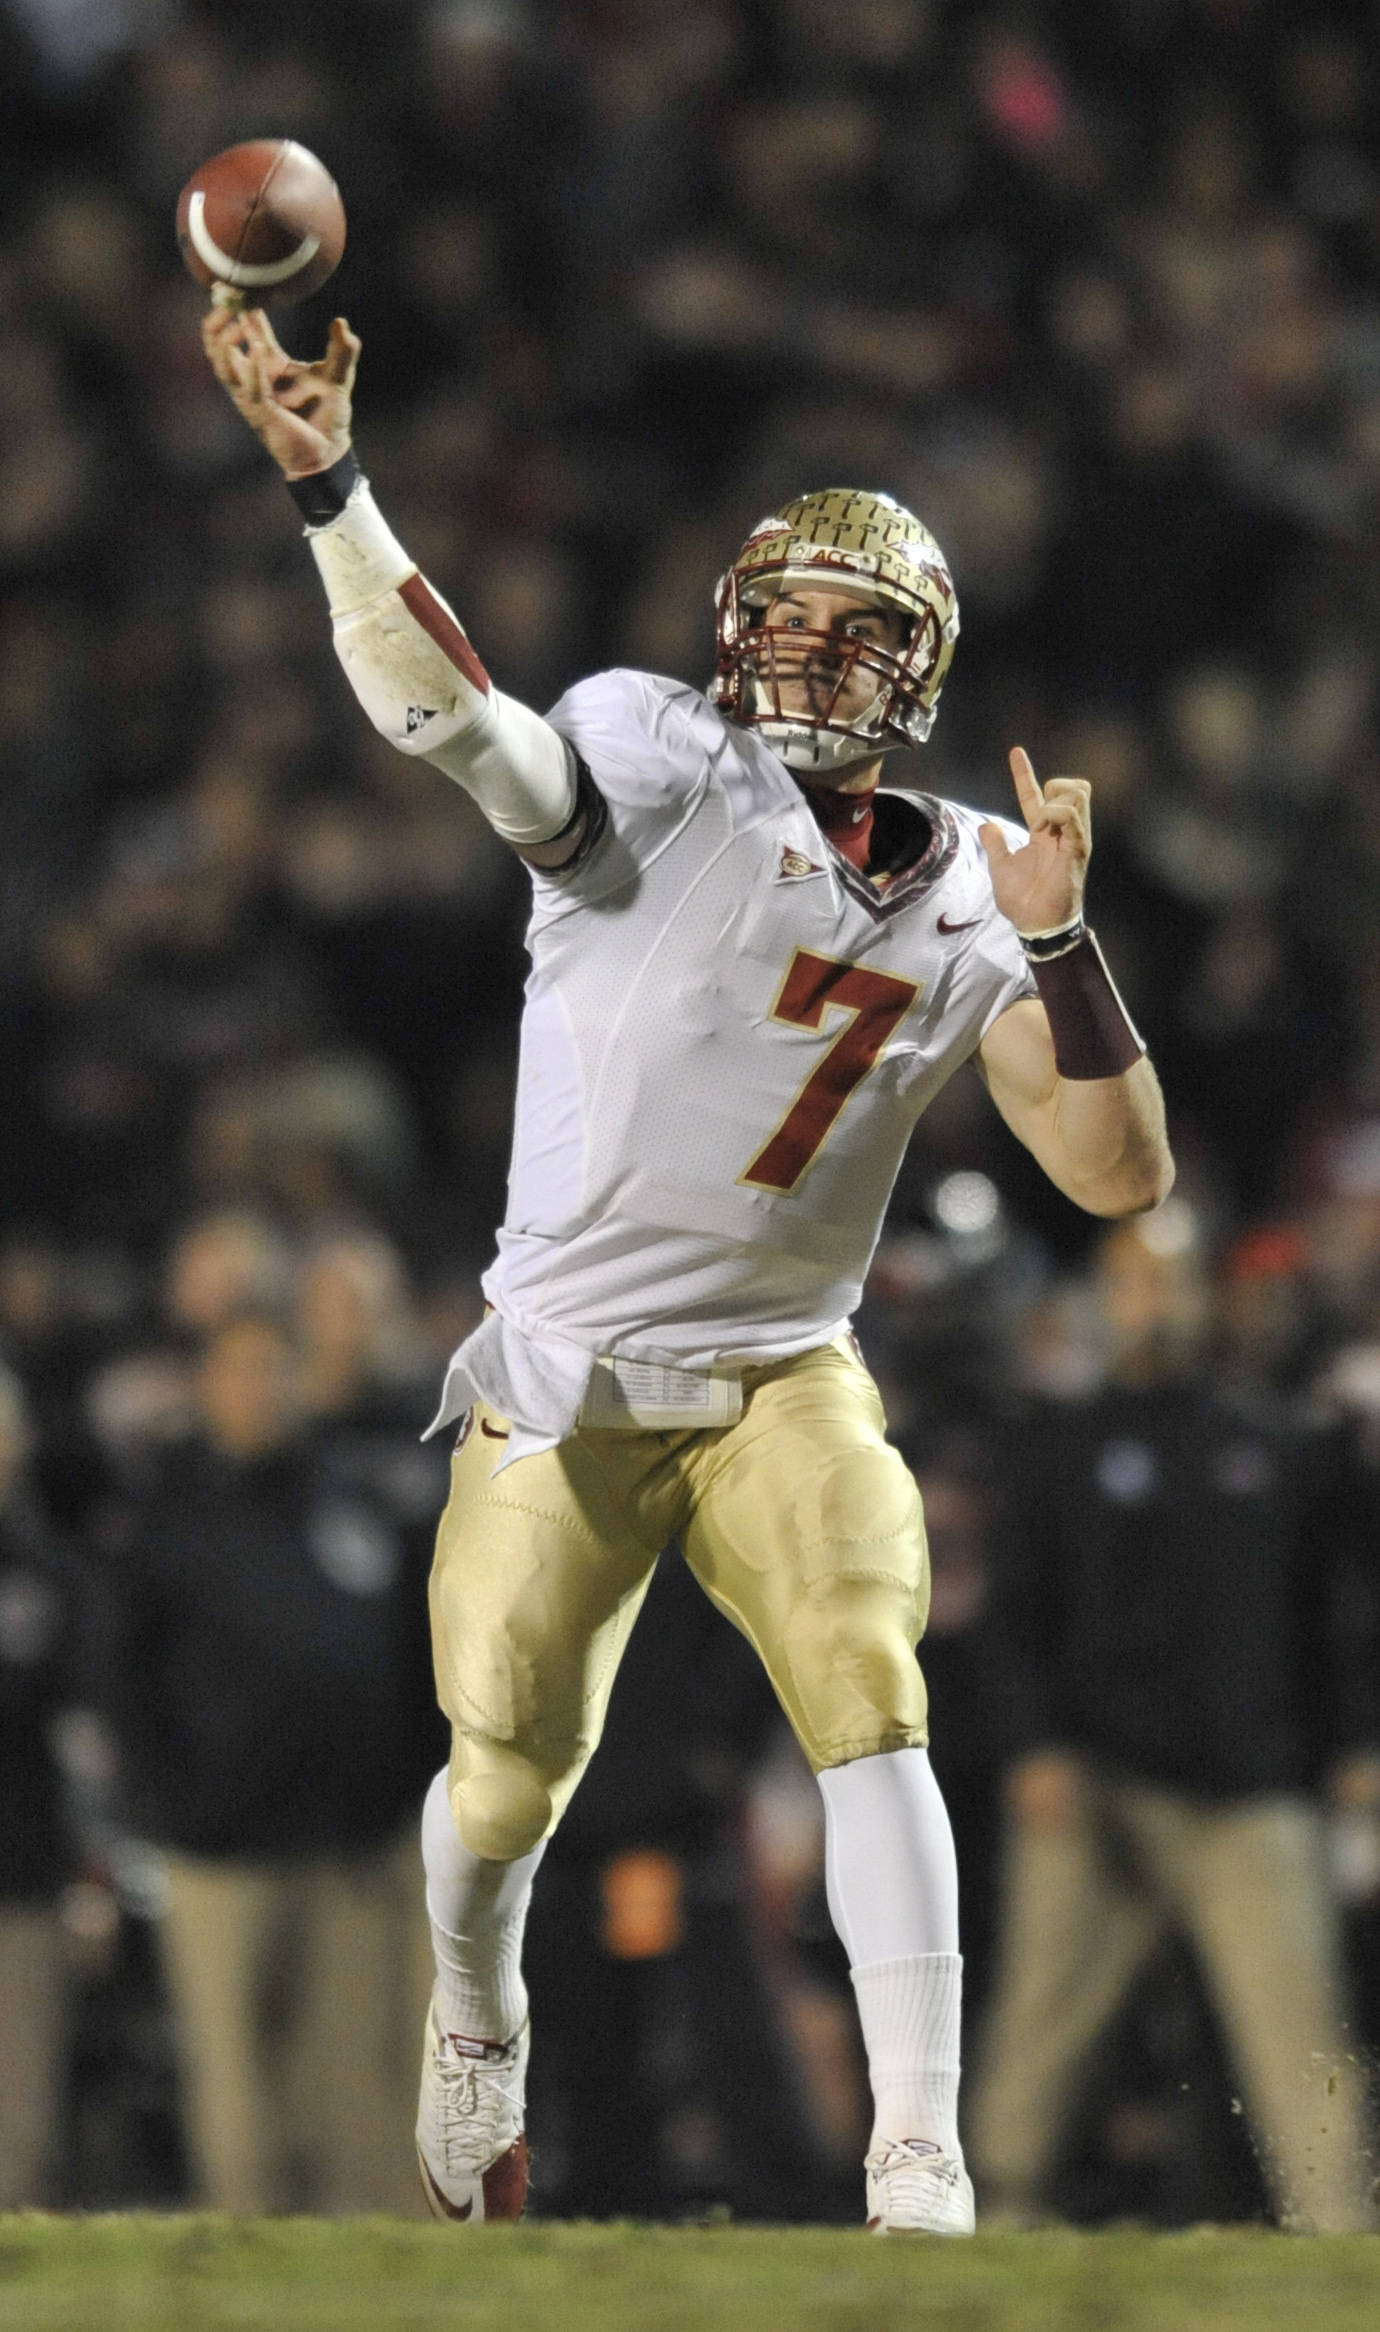 Florida State's quarterback Christian Ponder throws a pass against Maryland during the first half. (AP Photo/Gail Burton)